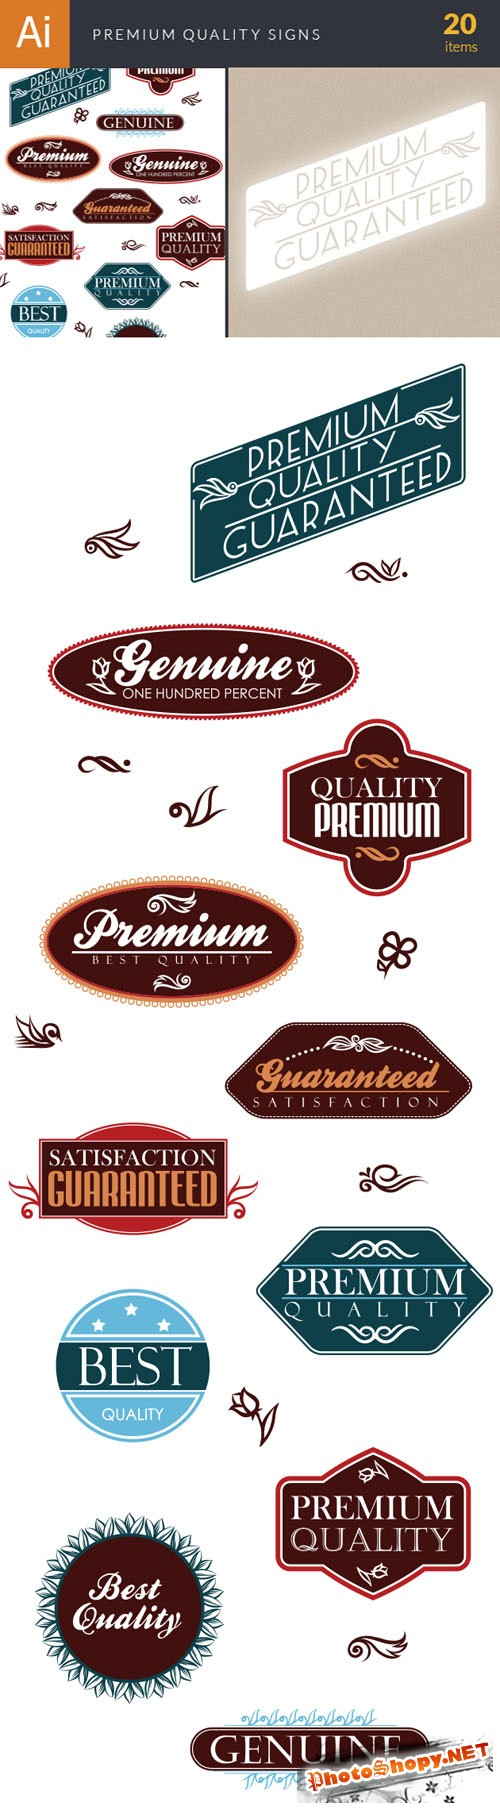 Premium Quality Signs Labels Vector Elements